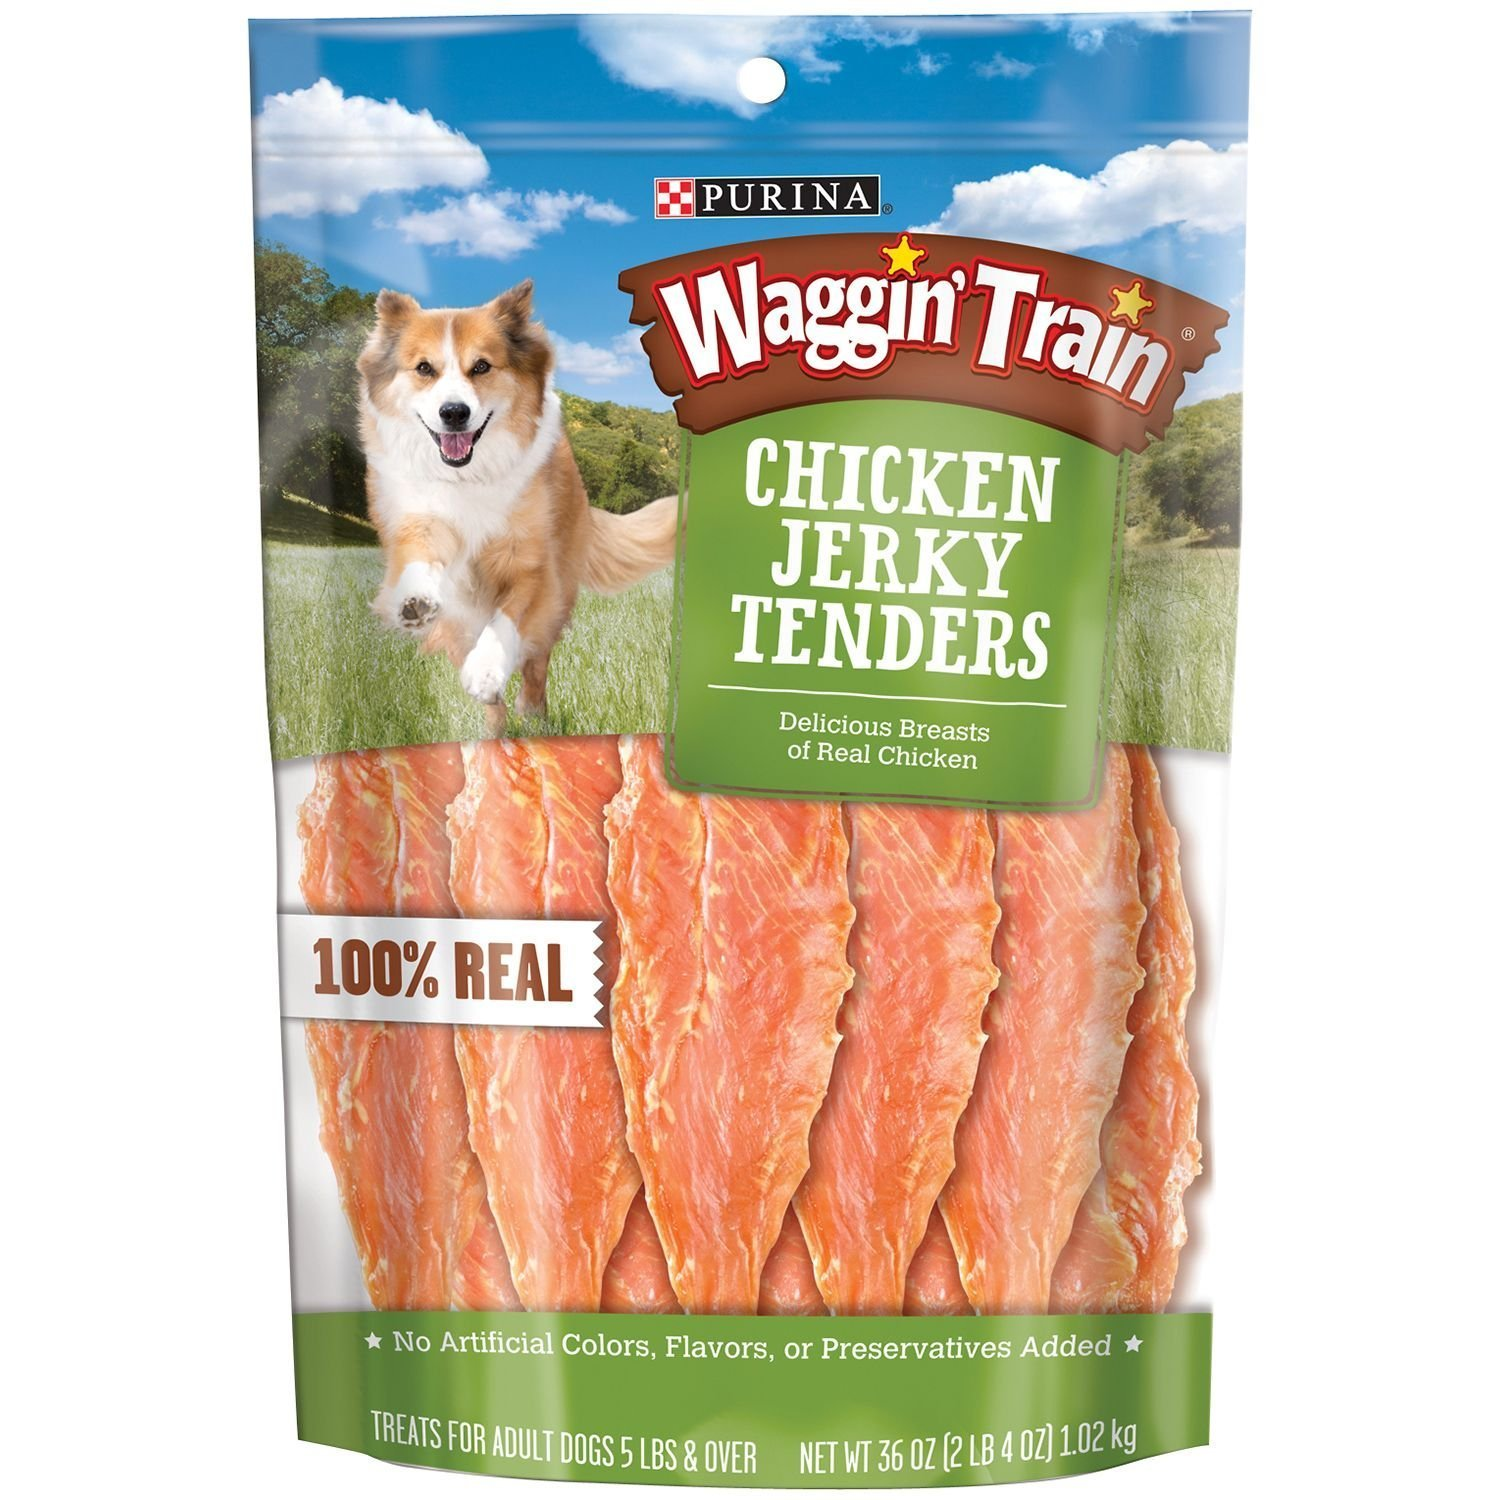 123 Treats Beef Dog Treats Esophagus 12 Inches – 20 Count 100 Natural Healthy Chews for Dogs – Meat Jerky Snack Free of Preservatives, Hormones Antibiotics From Grass Fed Cattle